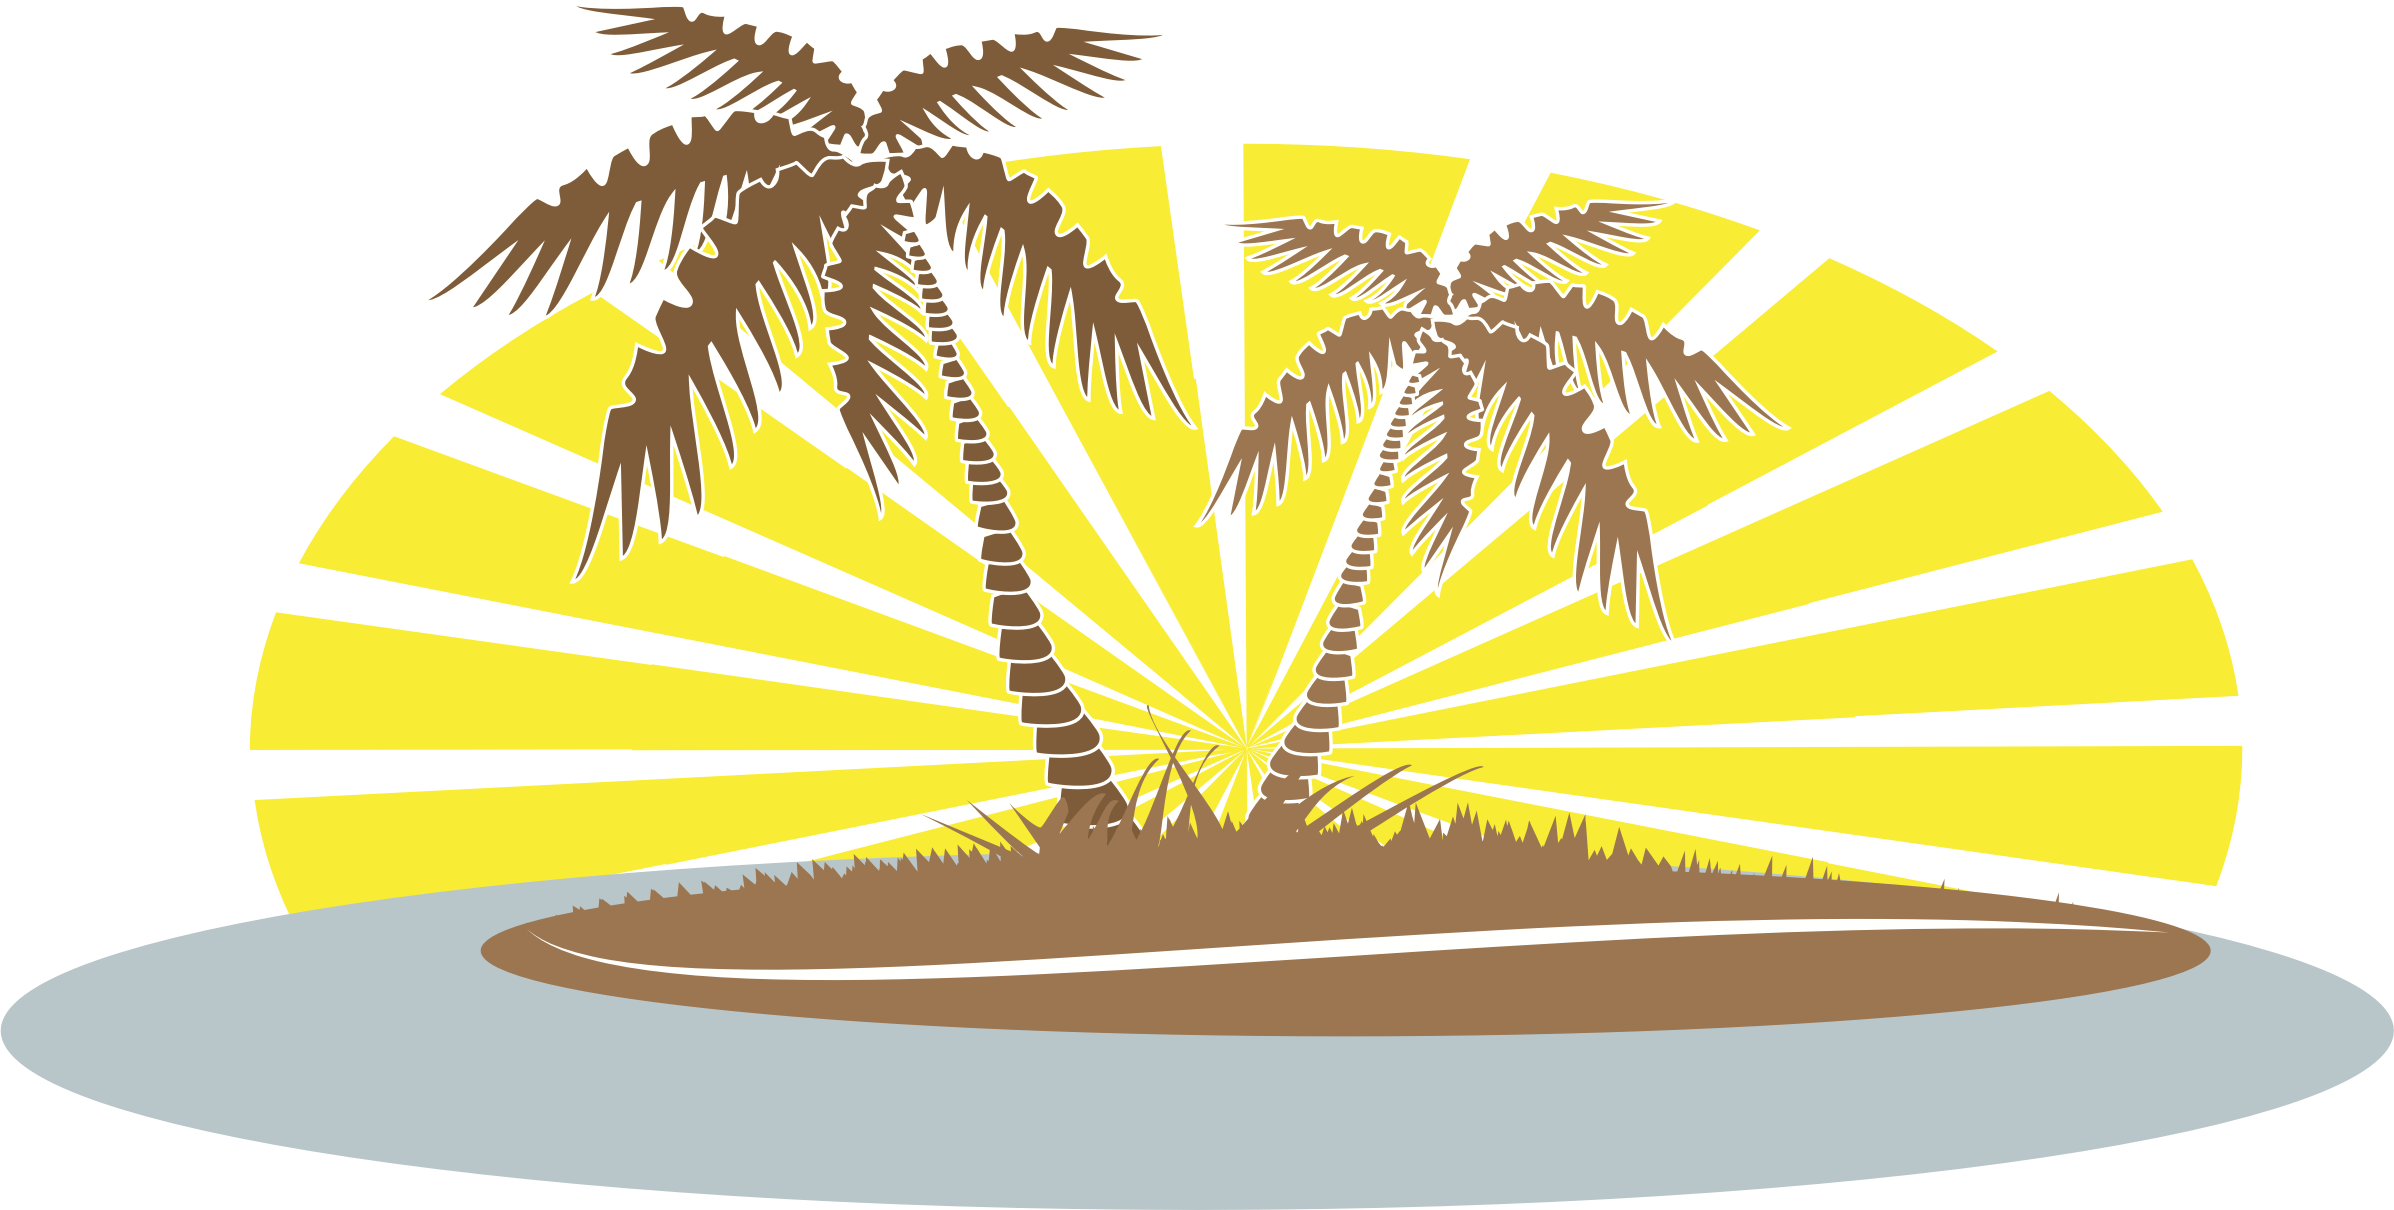 Palm tree beach clipart banner free Clipart - Palm Trees banner free